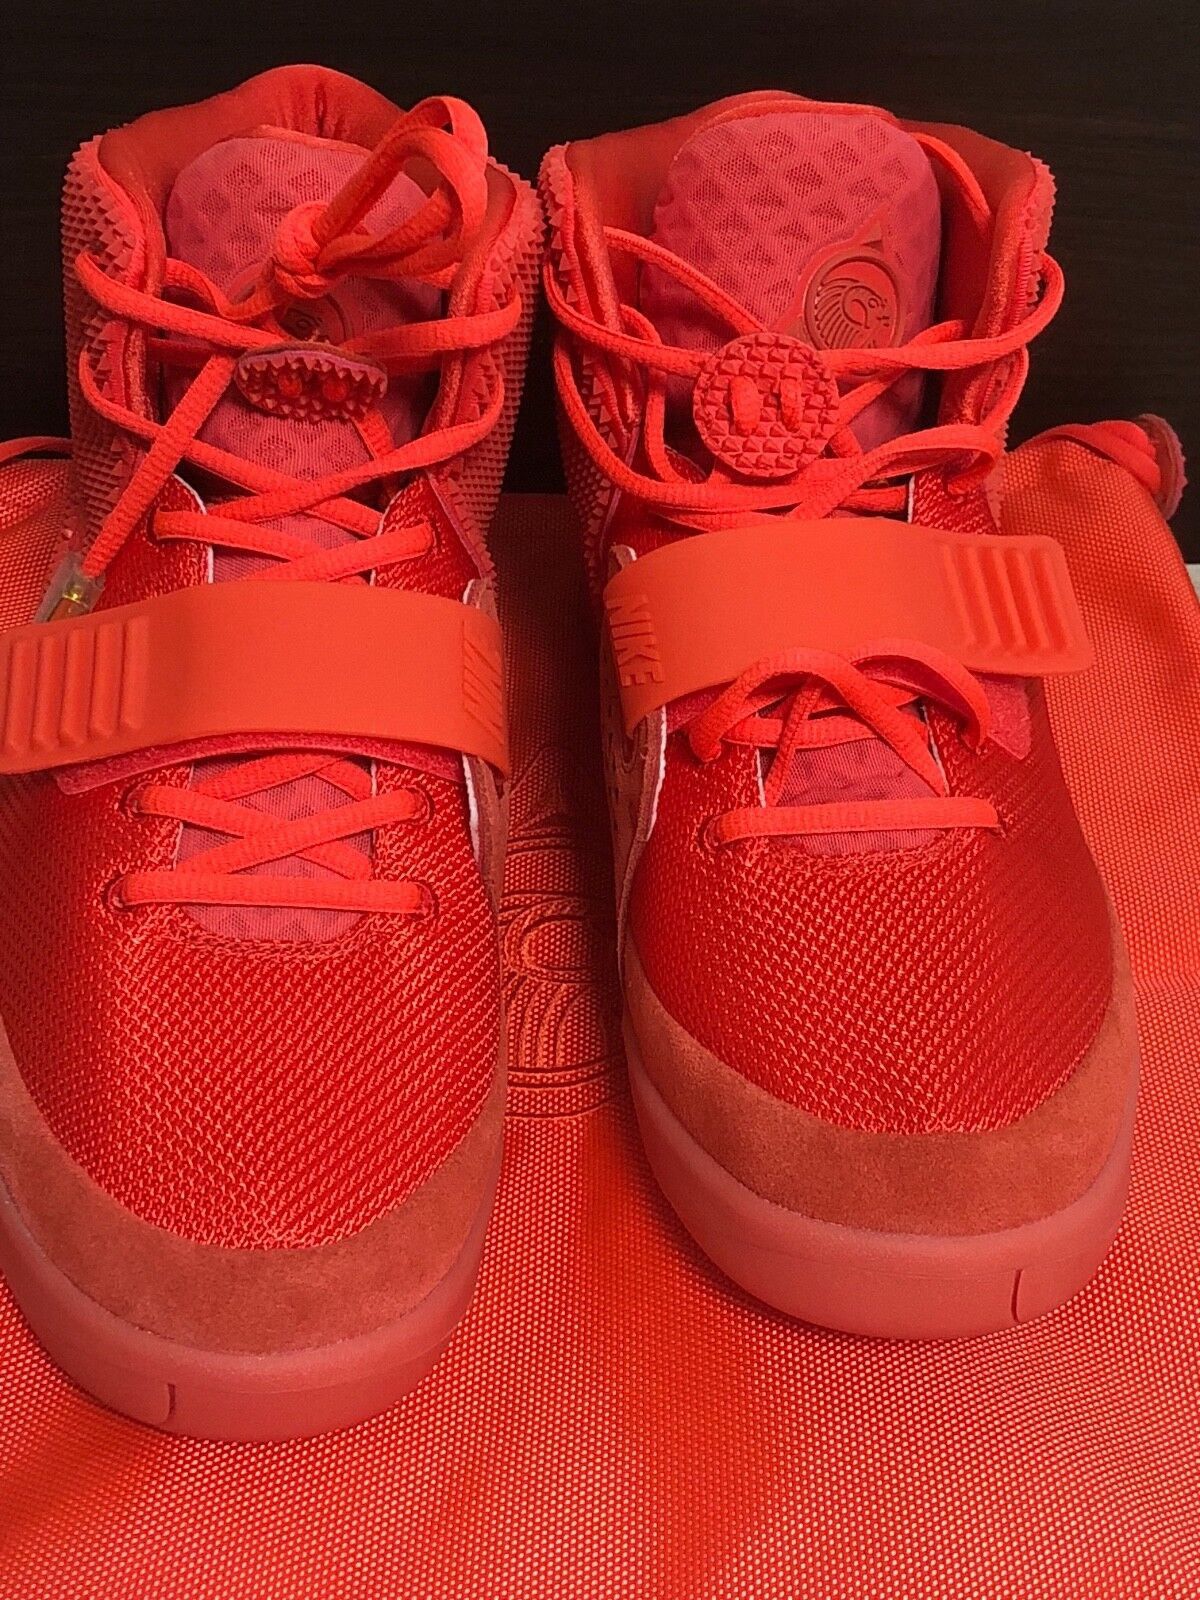 Authentic Red Nike Air Yeezy 2 Red Authentic October ed89a5